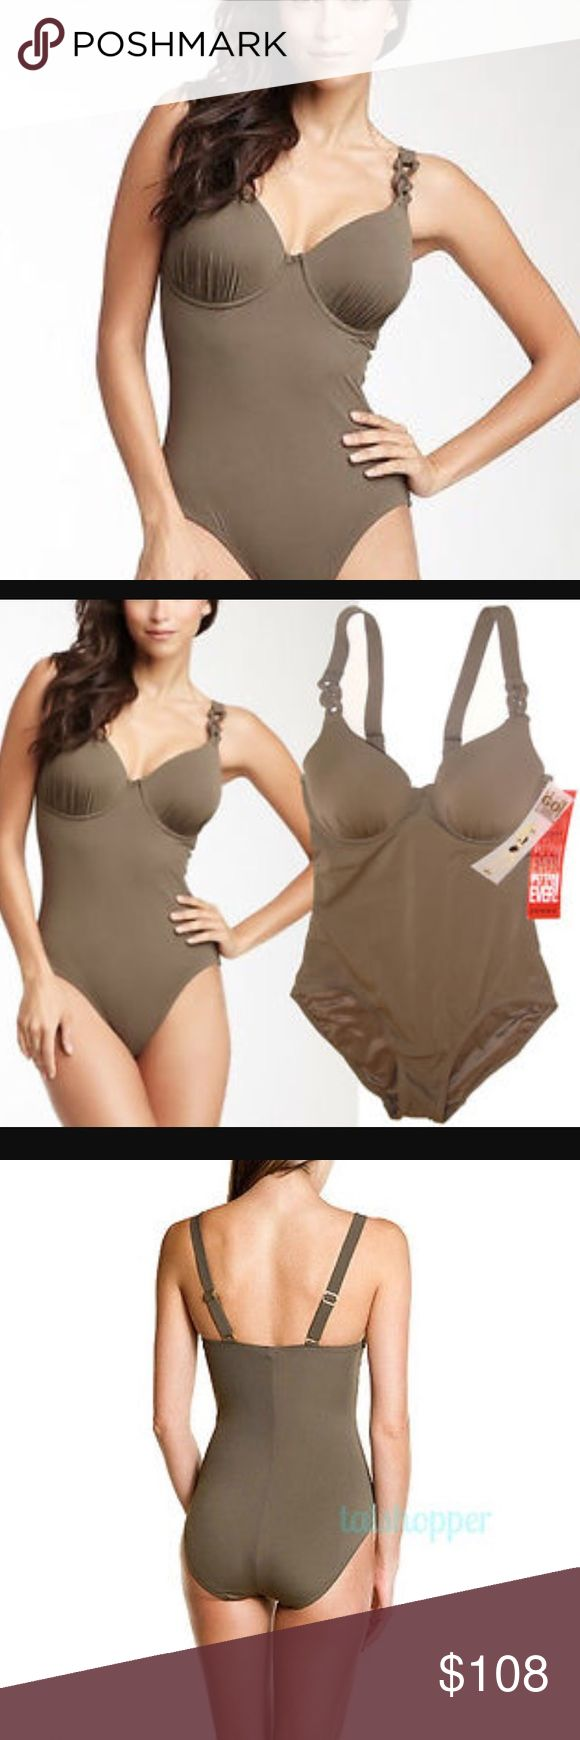 🎉END OF SEASON SALE Spanx shape wear NWT. BOUGHT AND NEVER WORN. Pewter 6D/DD. Most comfortable body shaping ever SPANX Swim One Pieces